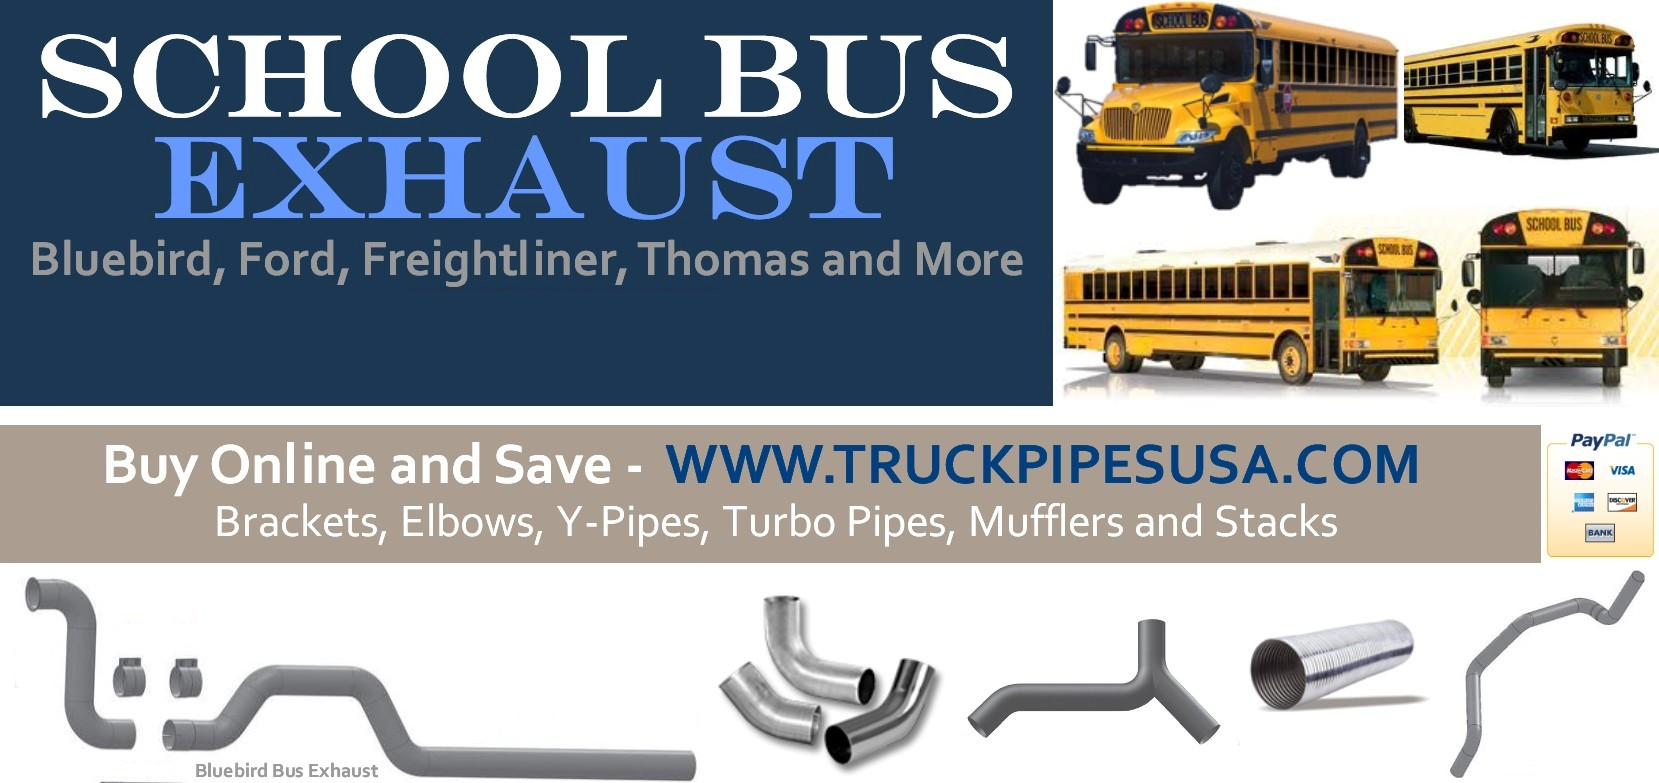 school-bus-truck-exhaust-banner-tp-usa.jpg